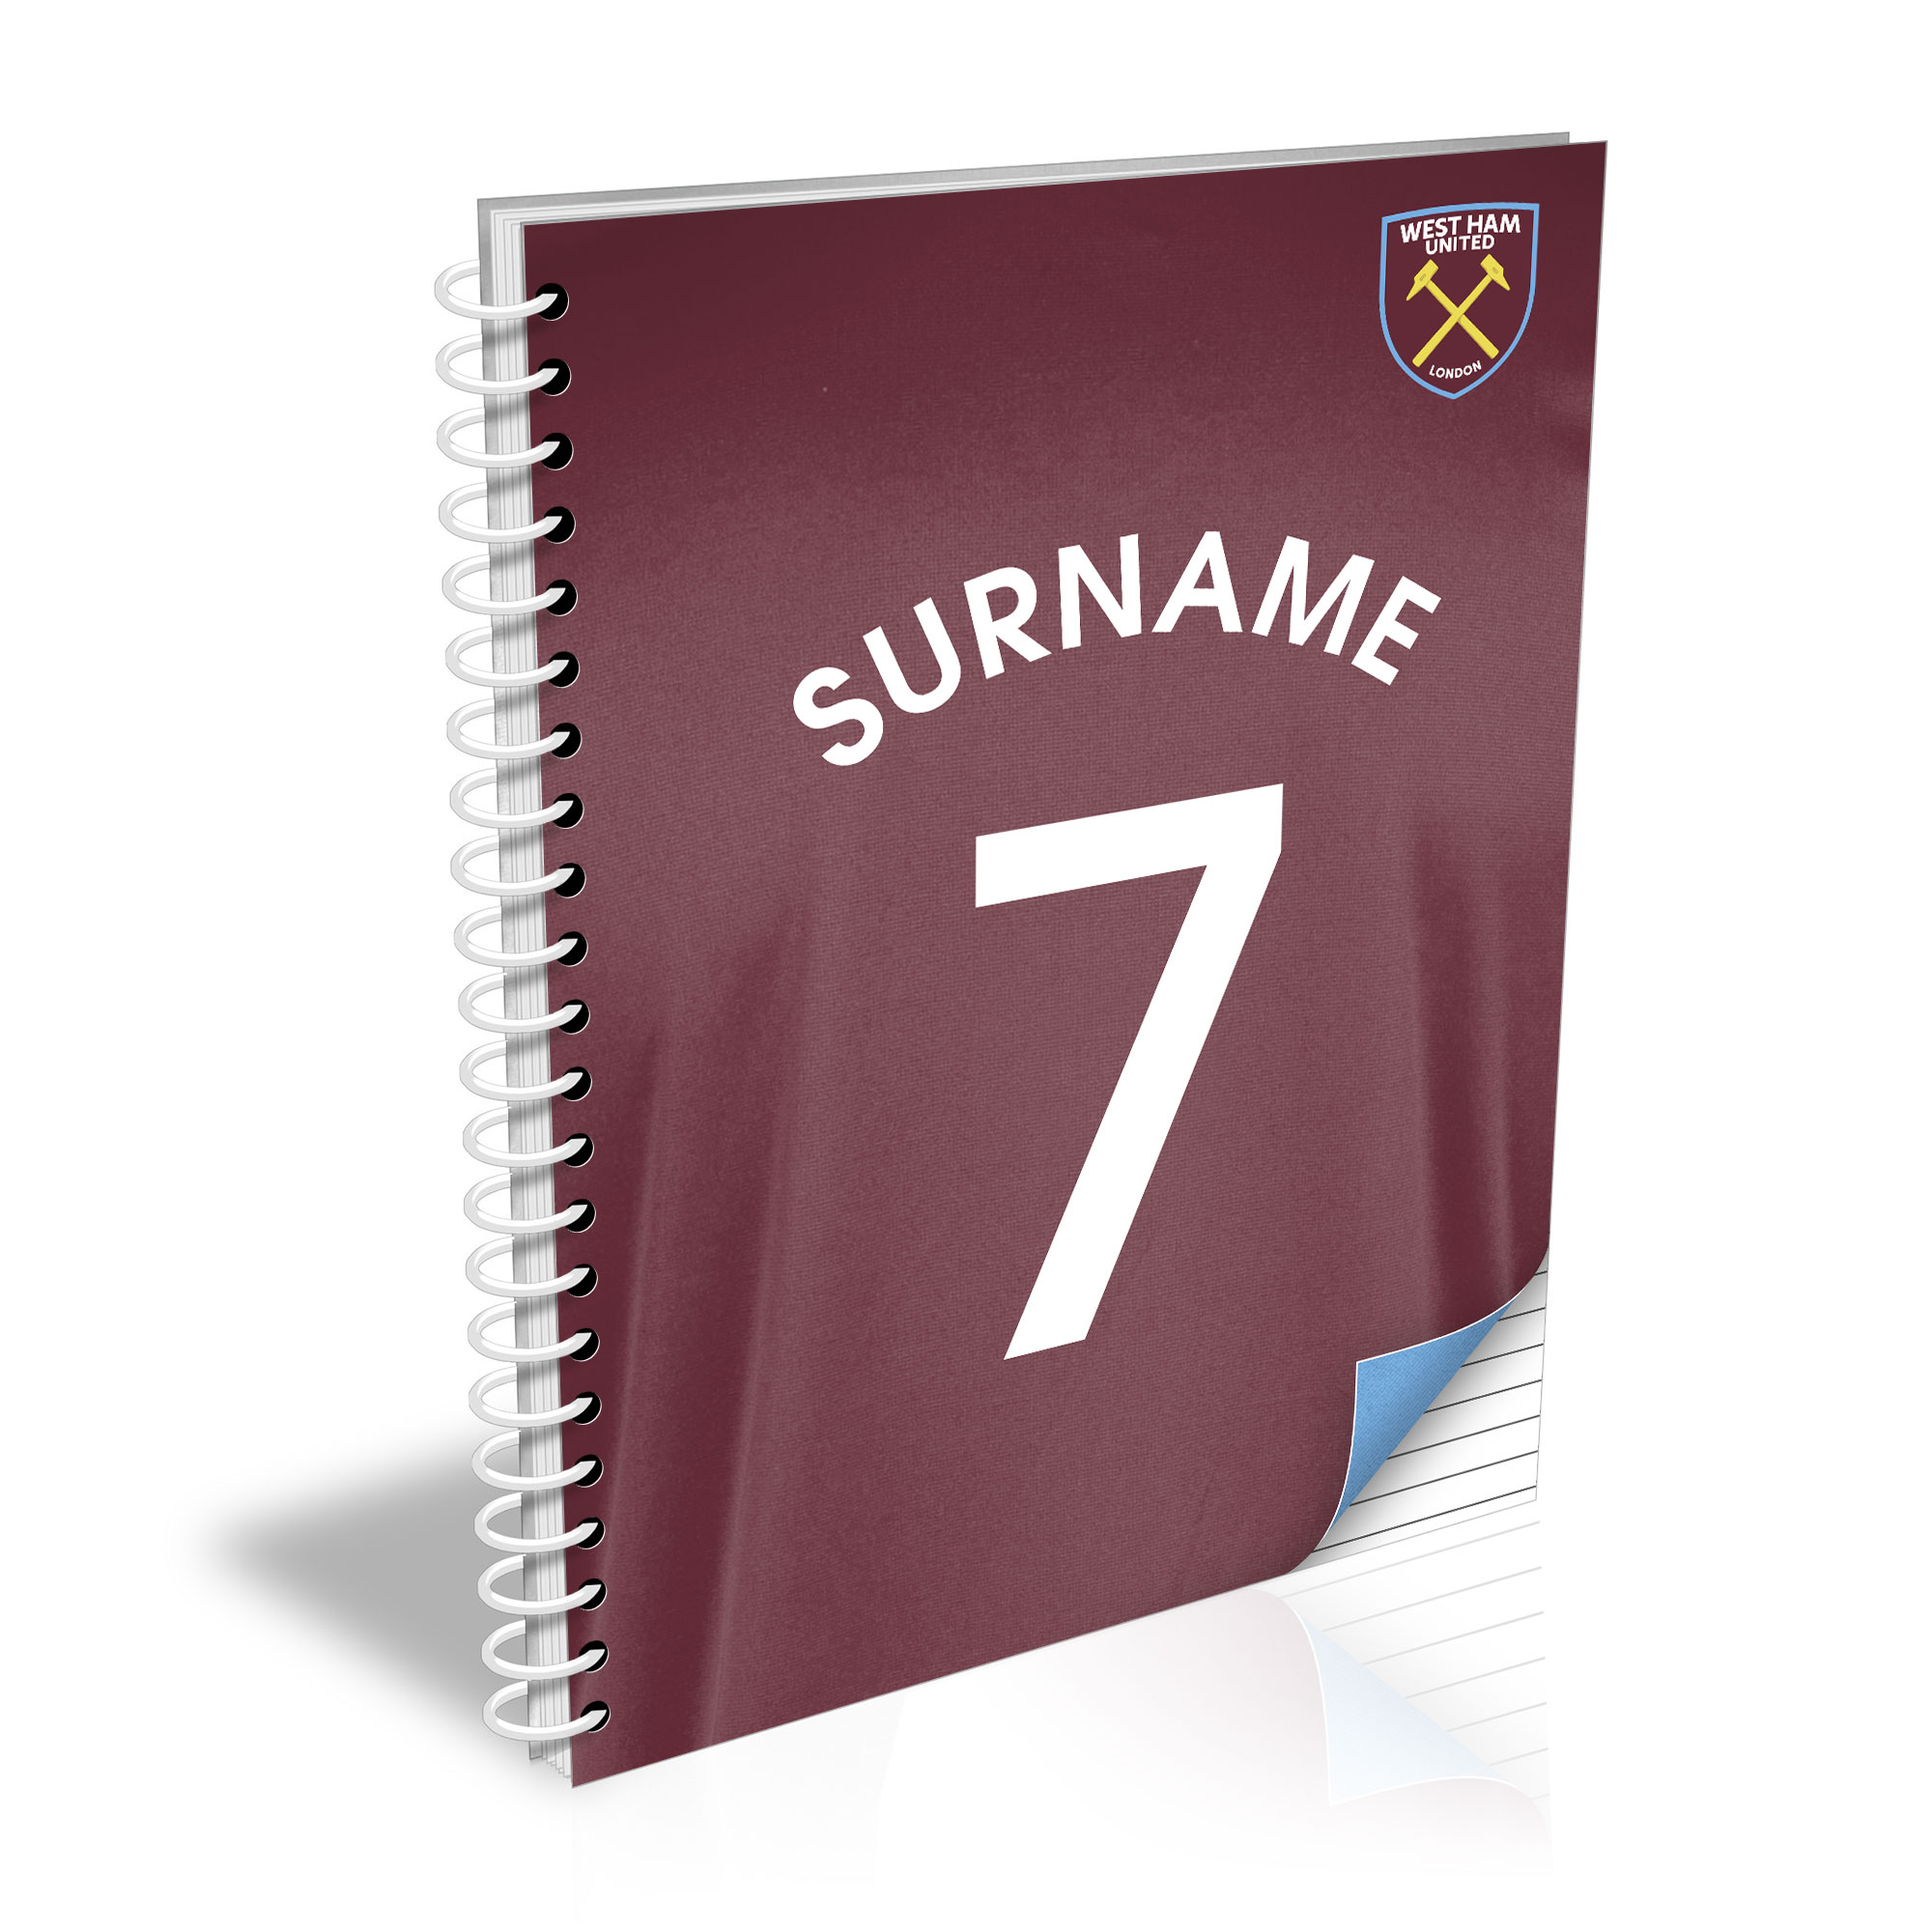 West Ham United FC Shirt Notebook